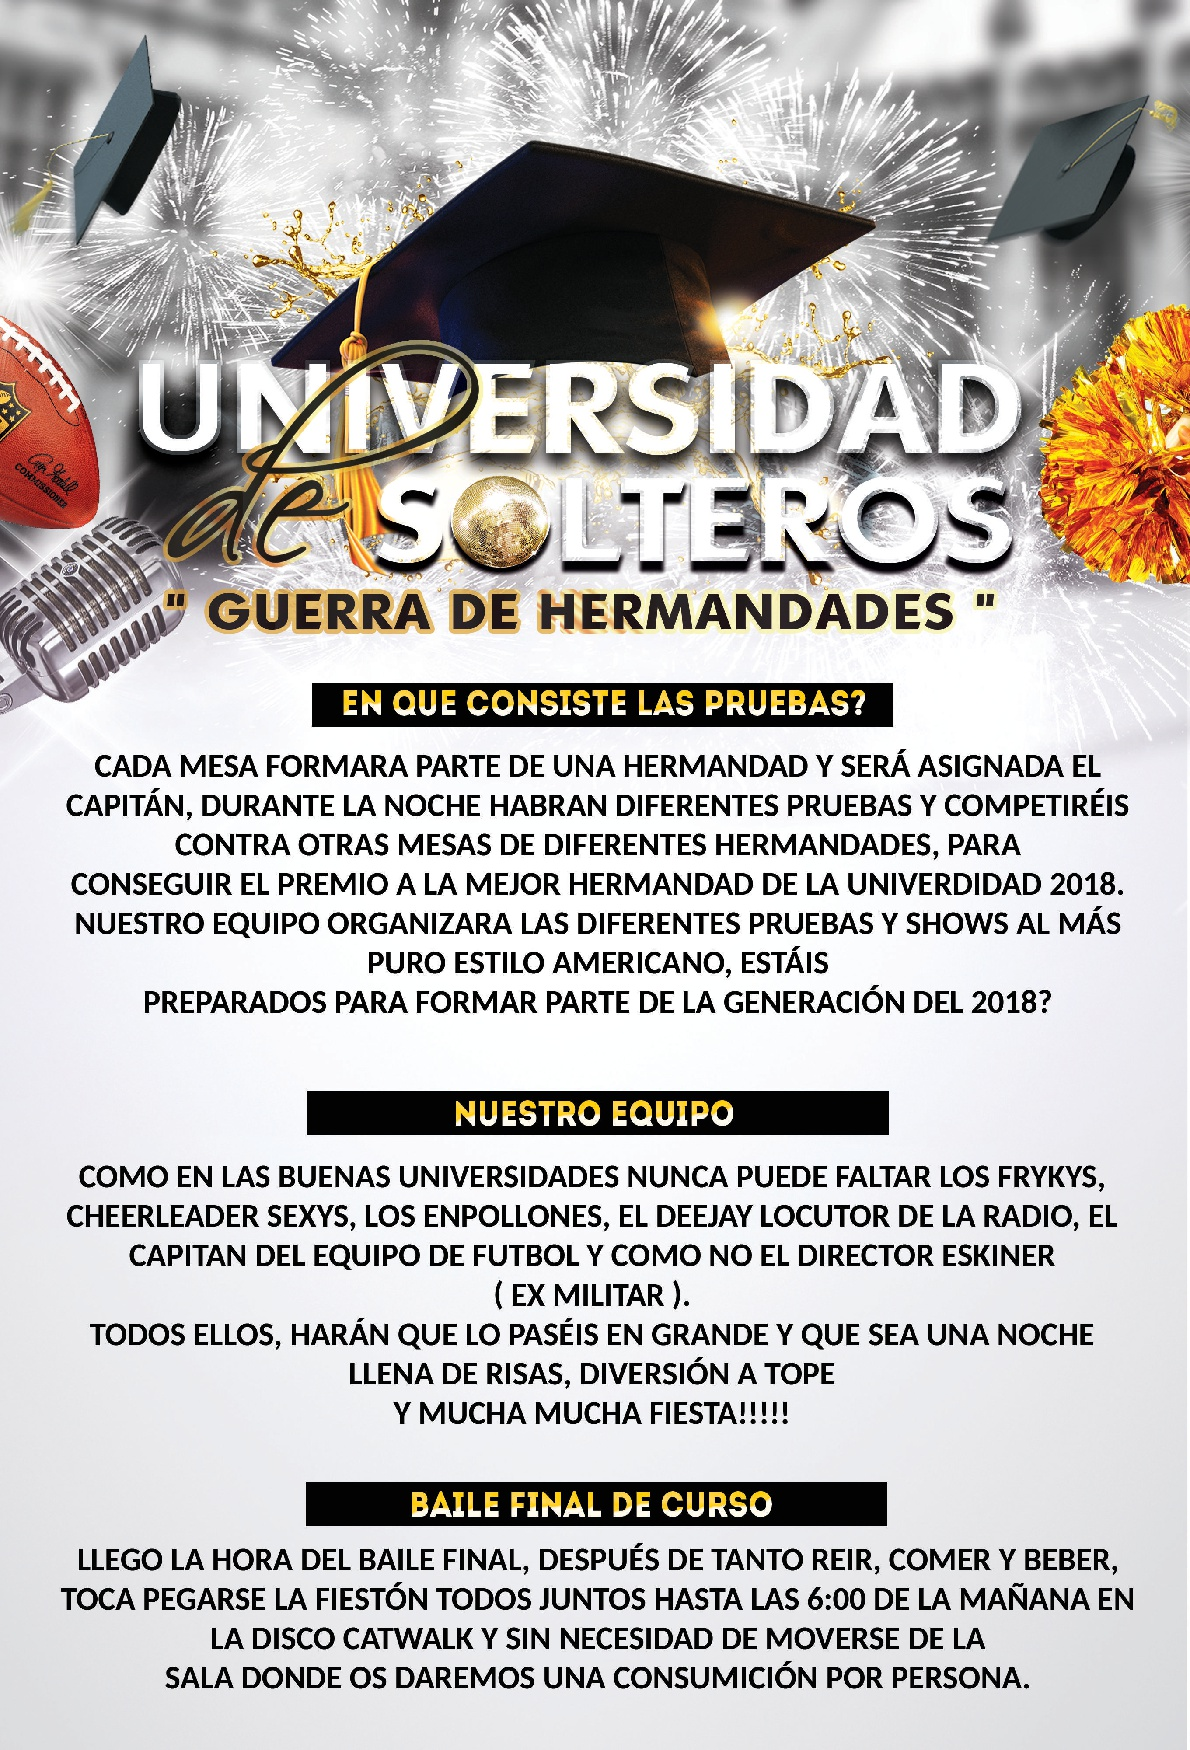 Universidad de solteros Catwalk